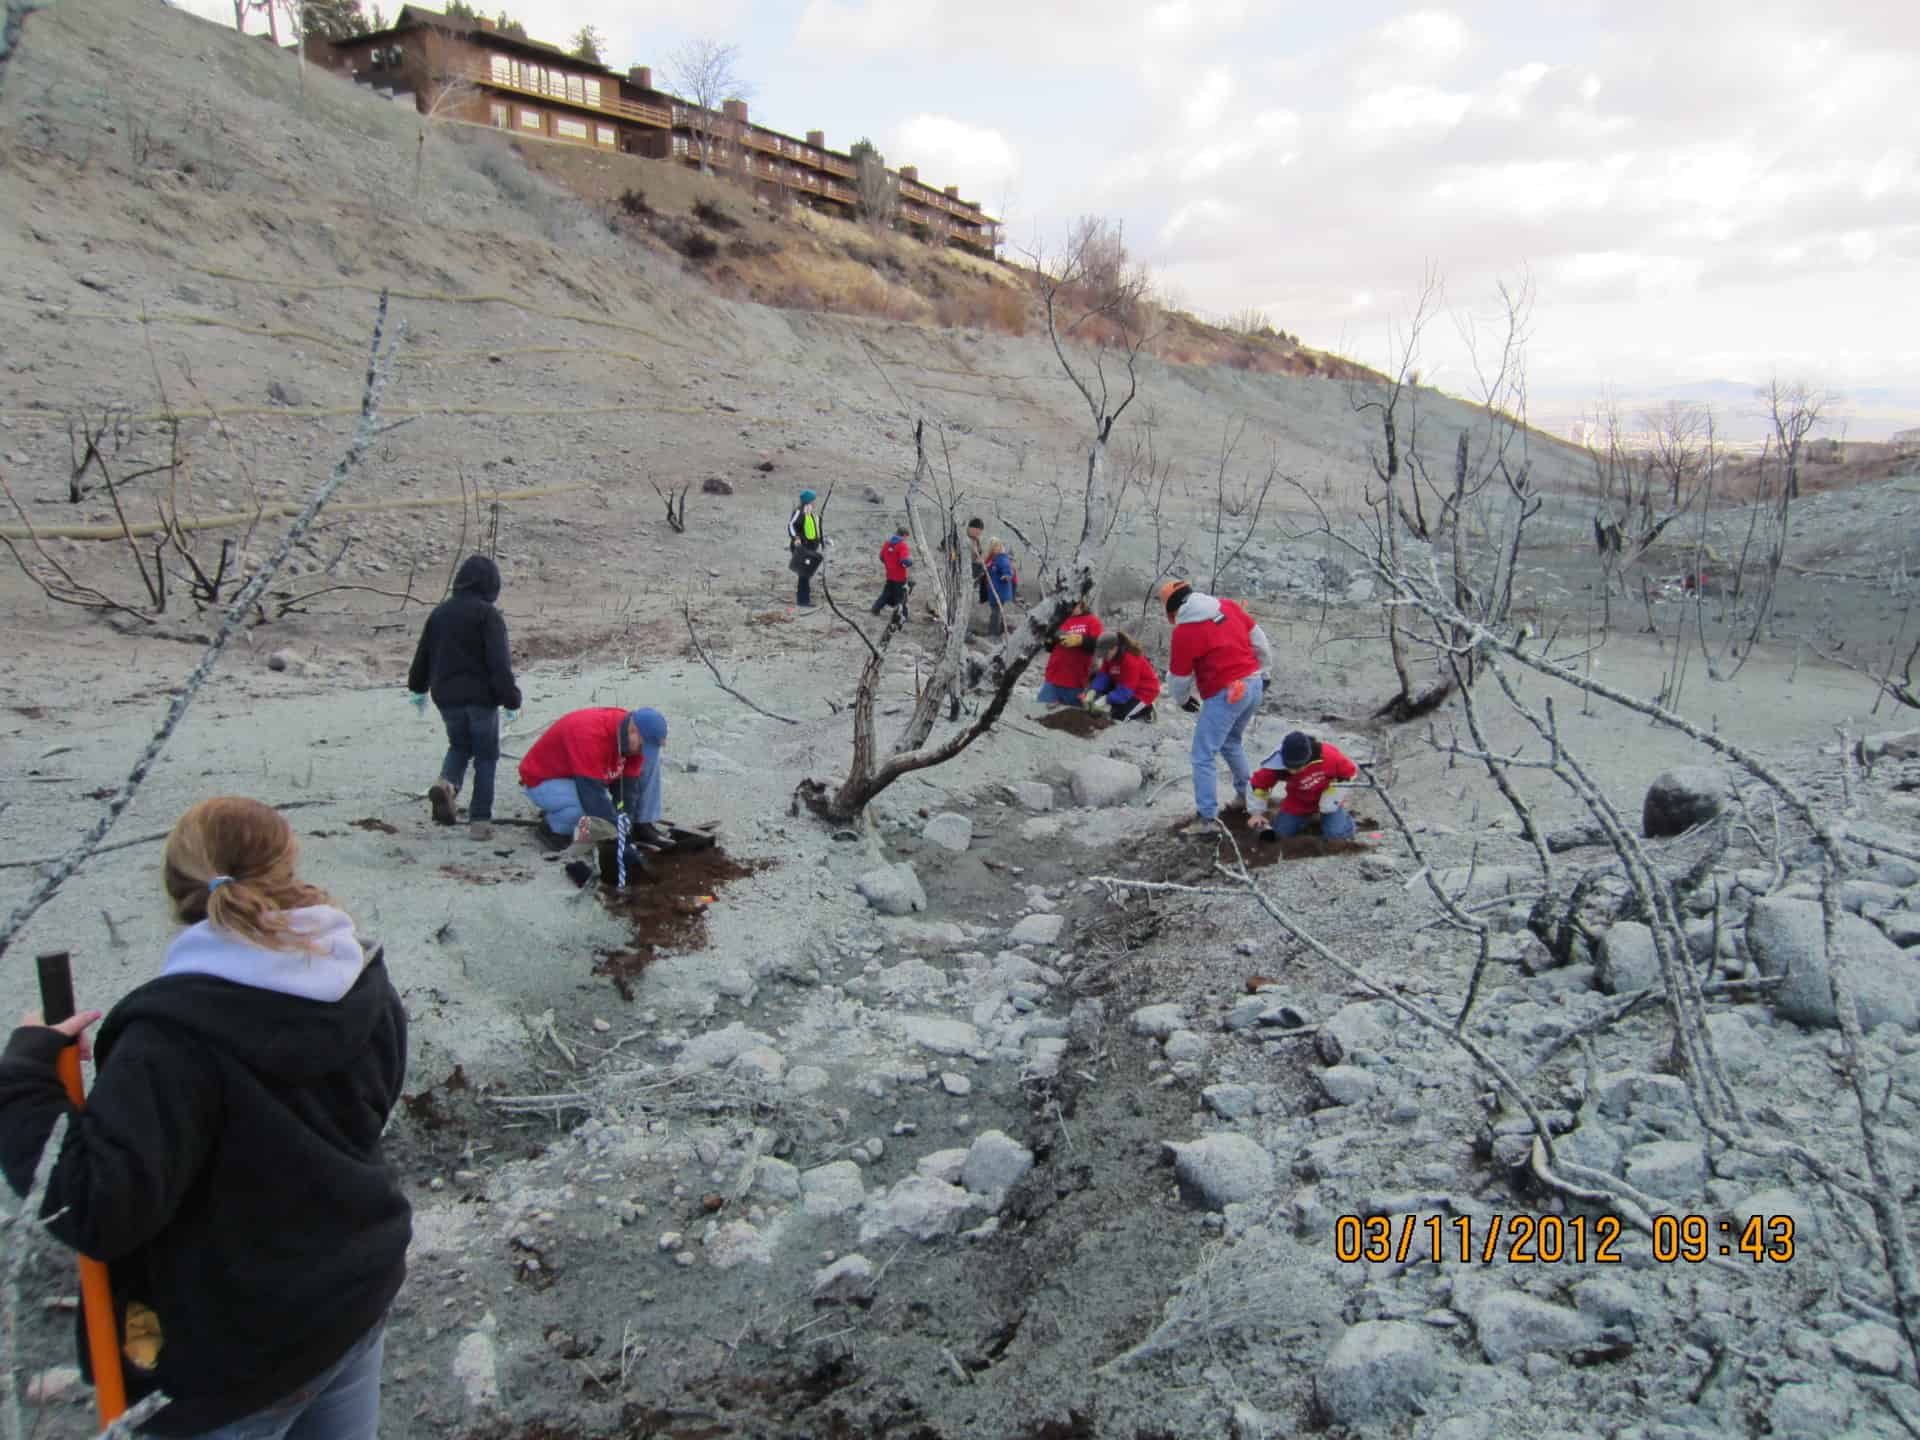 Much of NLT's fire-related work has been on post-fire restoration. Here volunteers work to replant after the Caughlin Ranch fire in 11/11. Credit: Tracy Visher